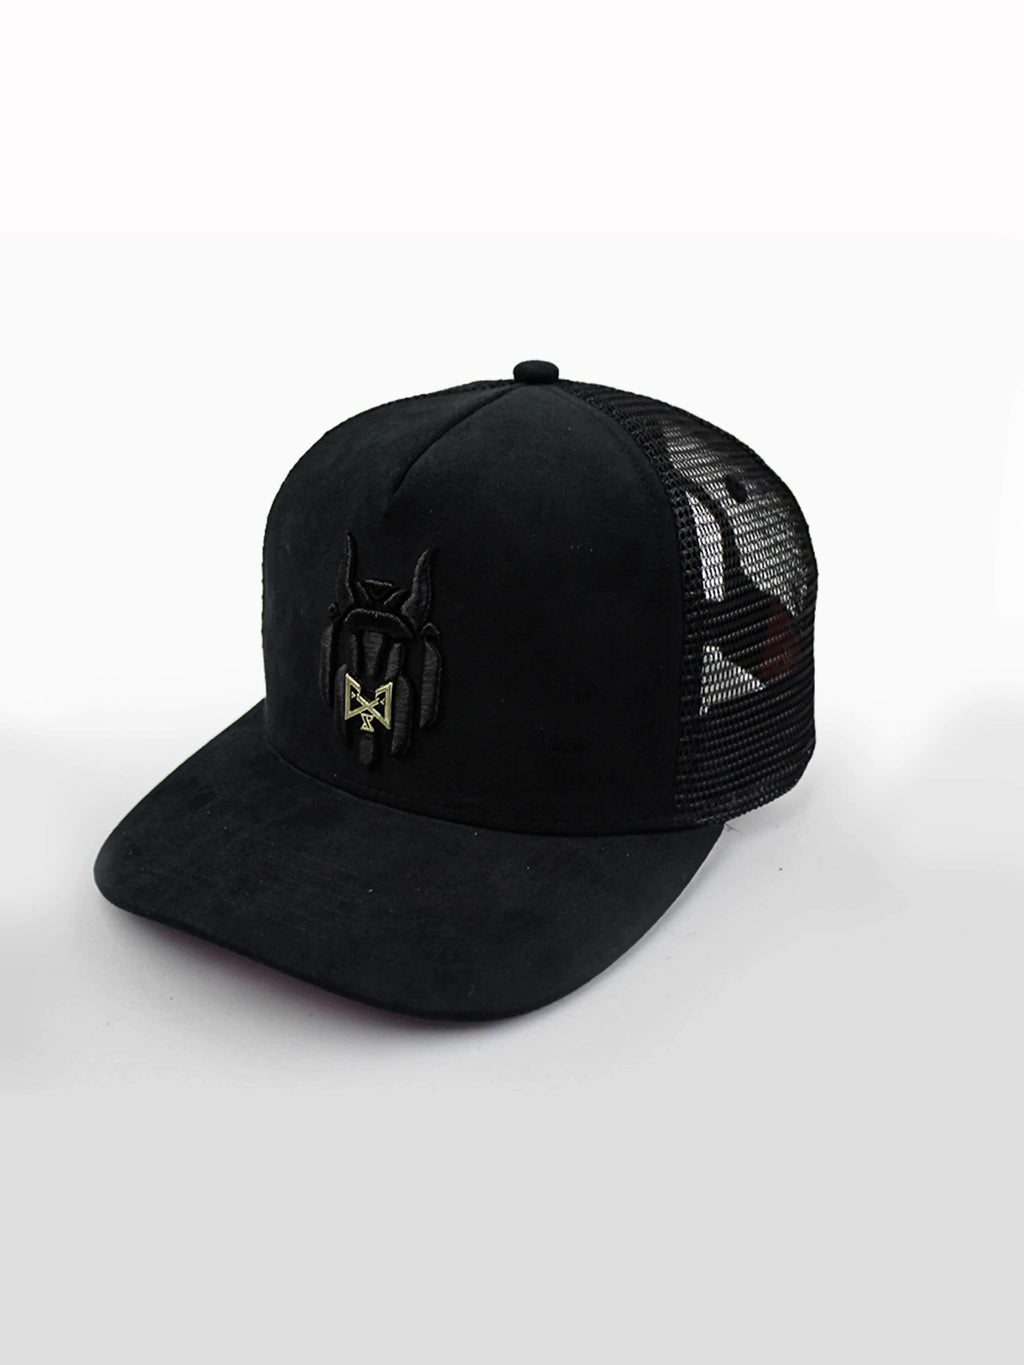 MEN CAP WOLVEZ NOT SHEEP SUEDE TRUCKER